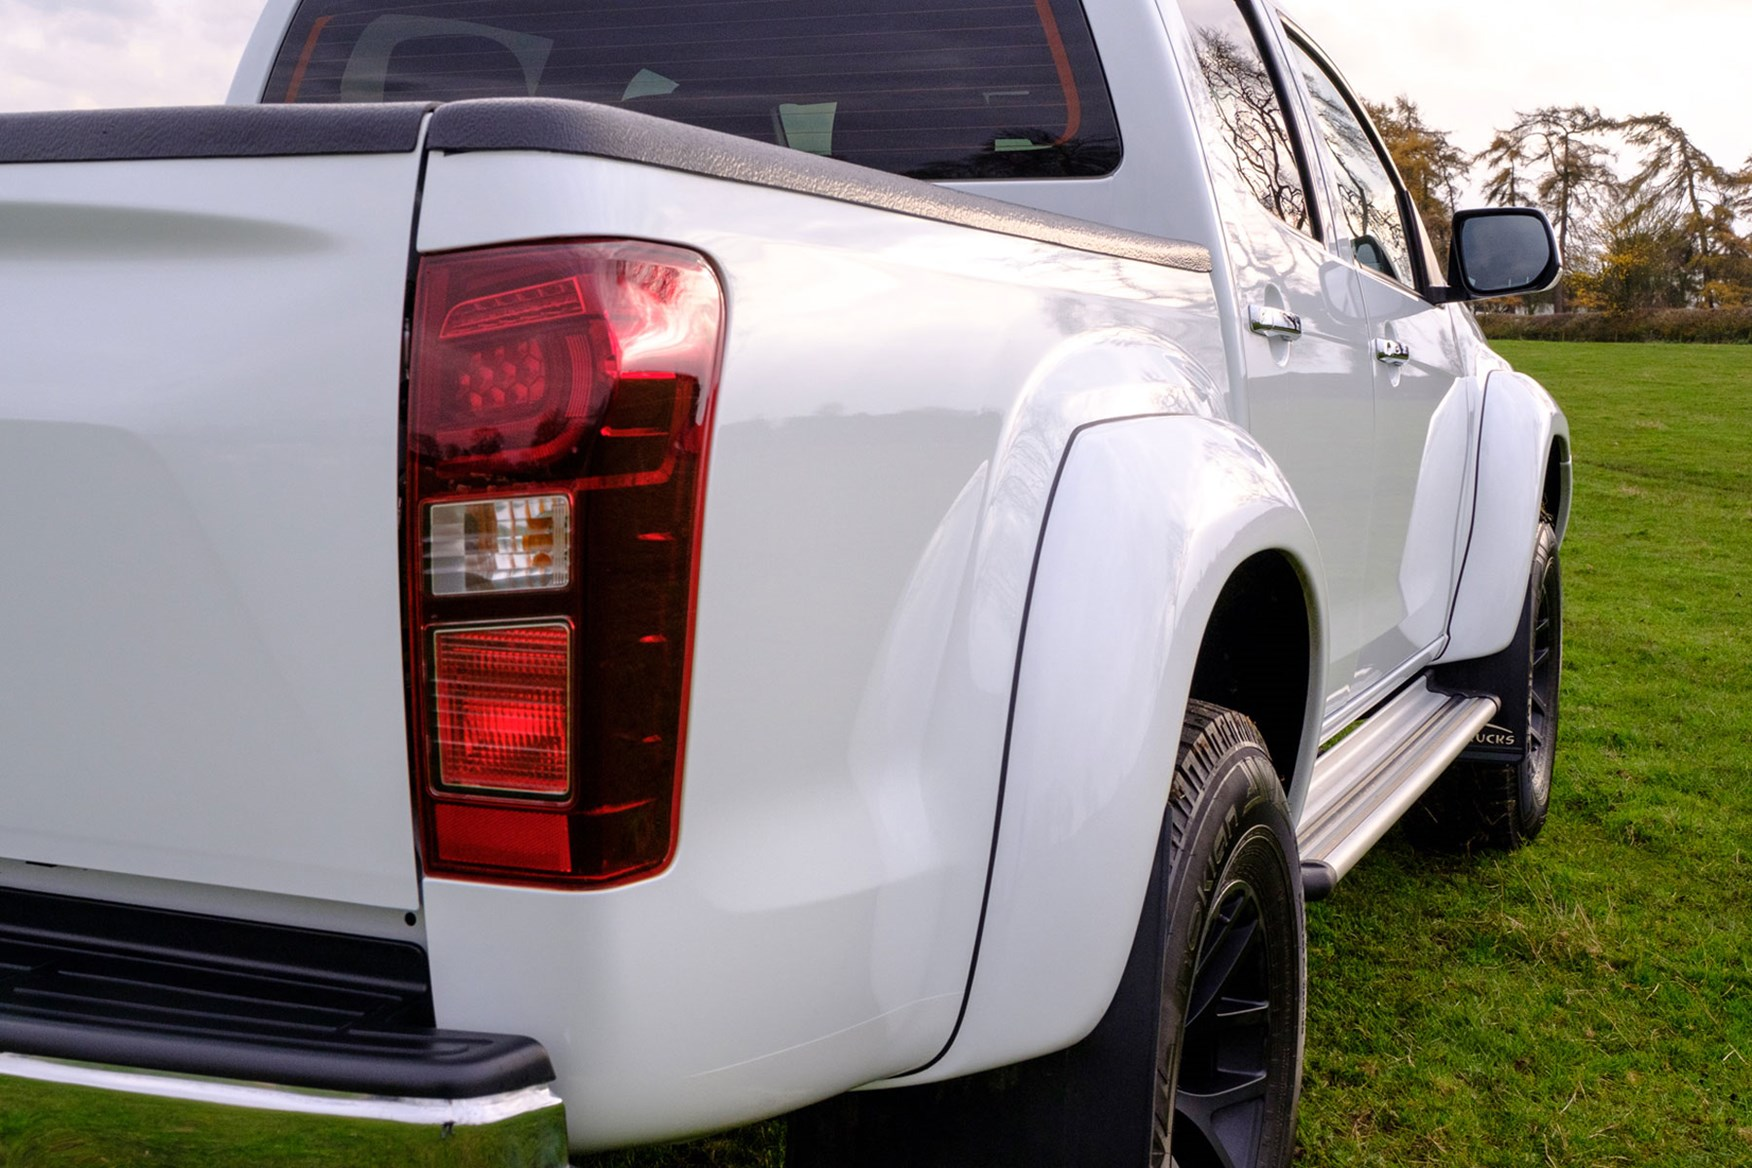 Isuzu D-Max AT35 1.9 review - rear view, close up, white